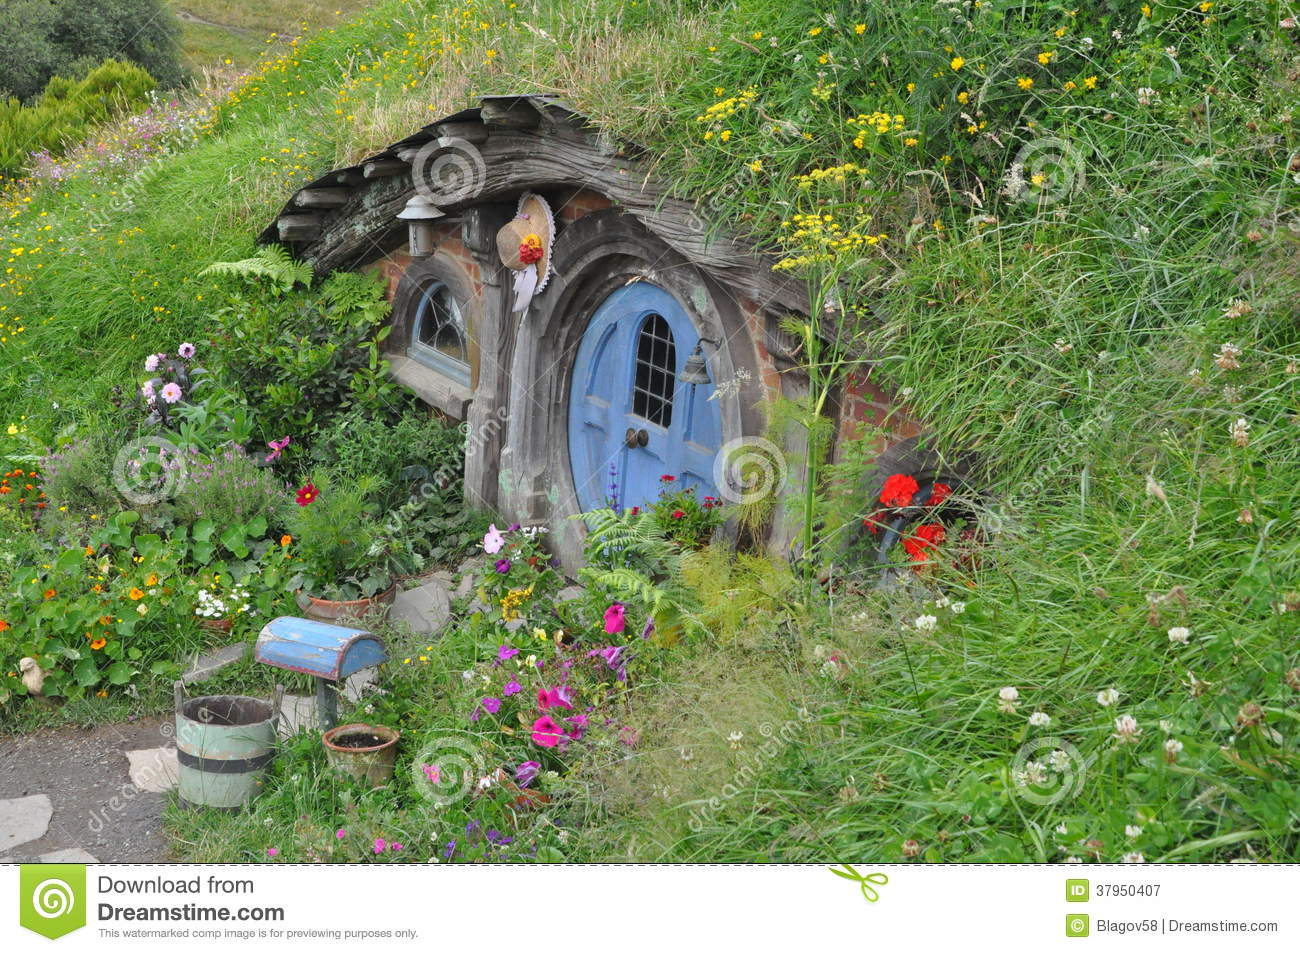 Hobbit house with blue door editorial photography image for Hobbit house images